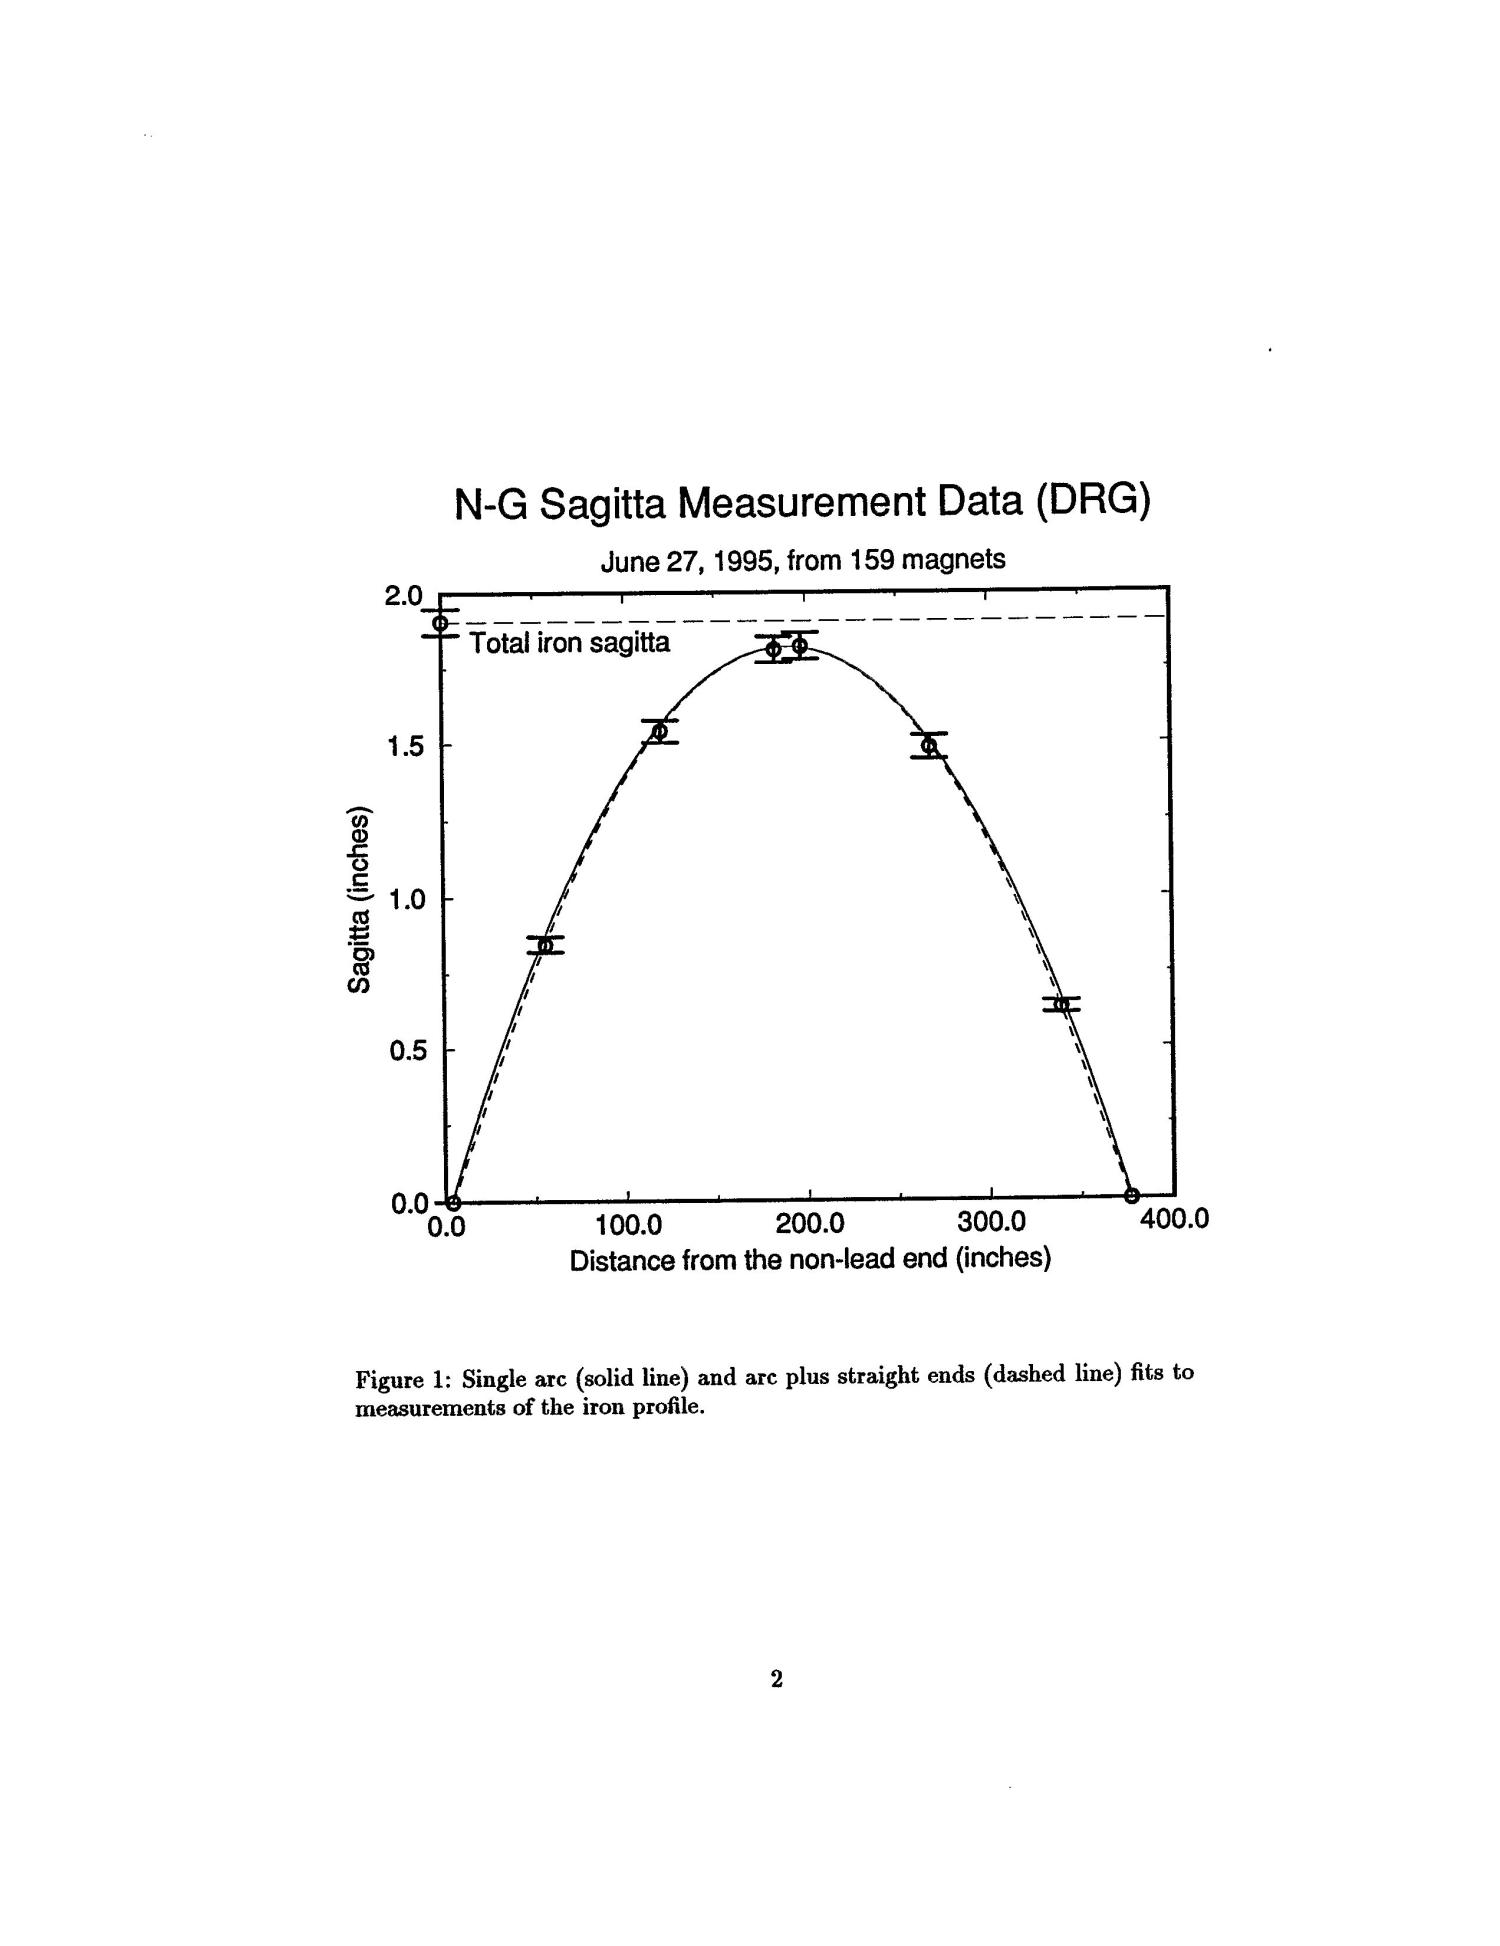 The Warm Iron Geometry of the ?Average? RHIC Dipole                                                                                                      [Sequence #]: 2 of 7